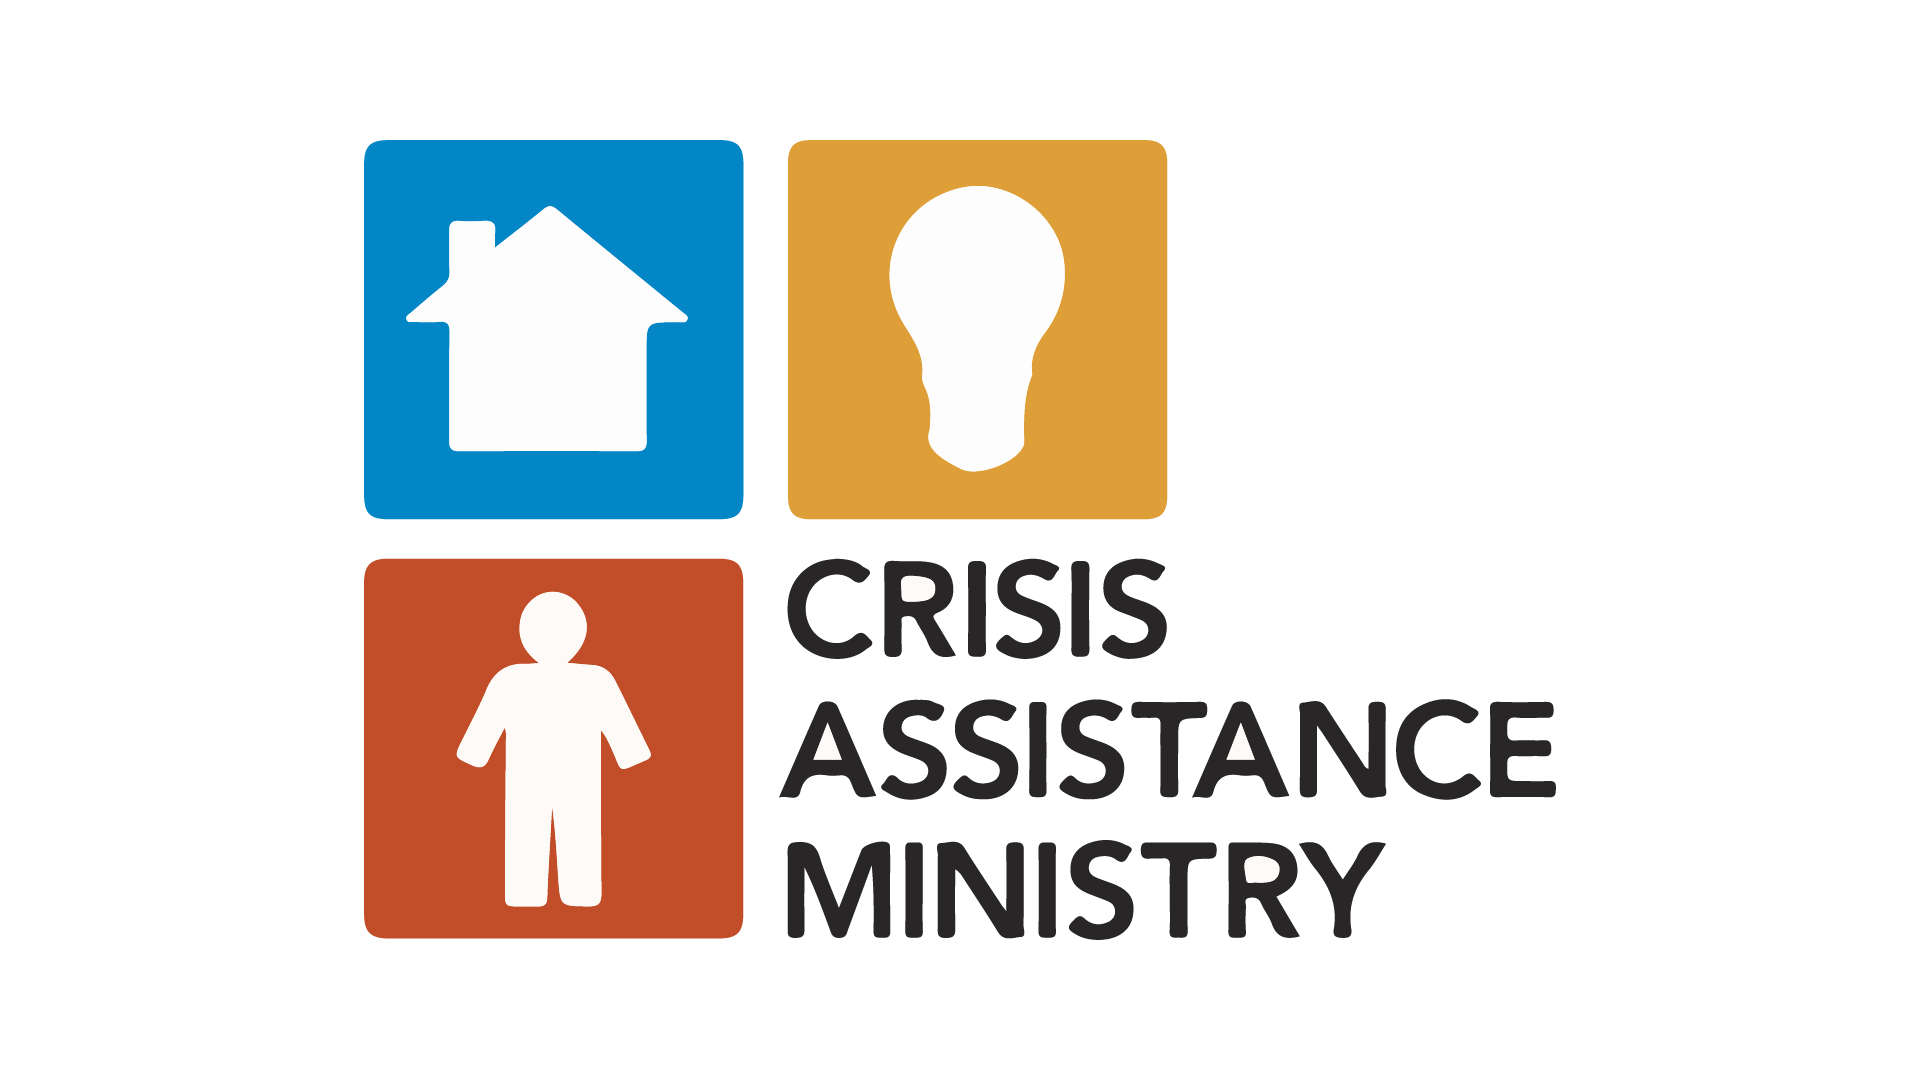 Crisis-Assistance-Ministry